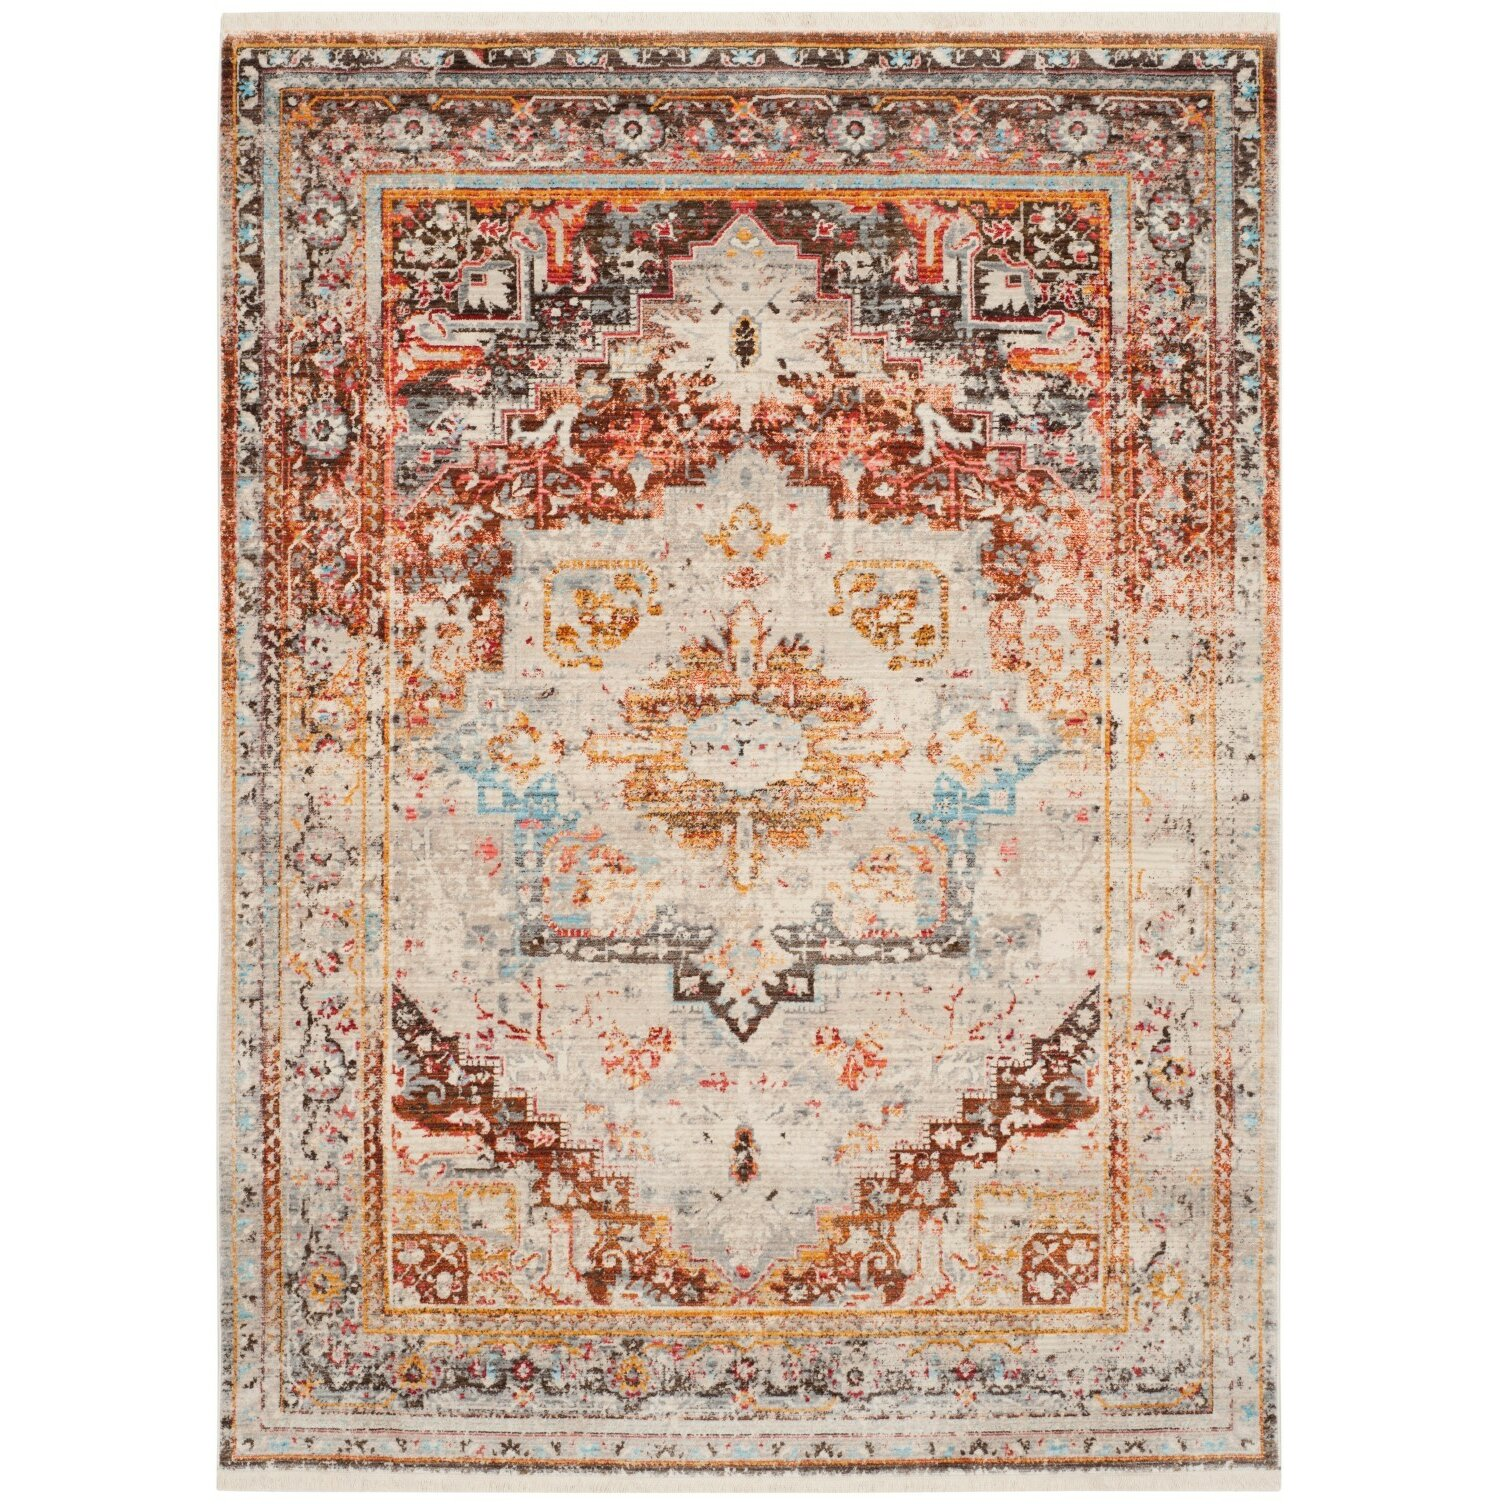 Vintage Looking Area Rugs: Vintage Persian Area Rug